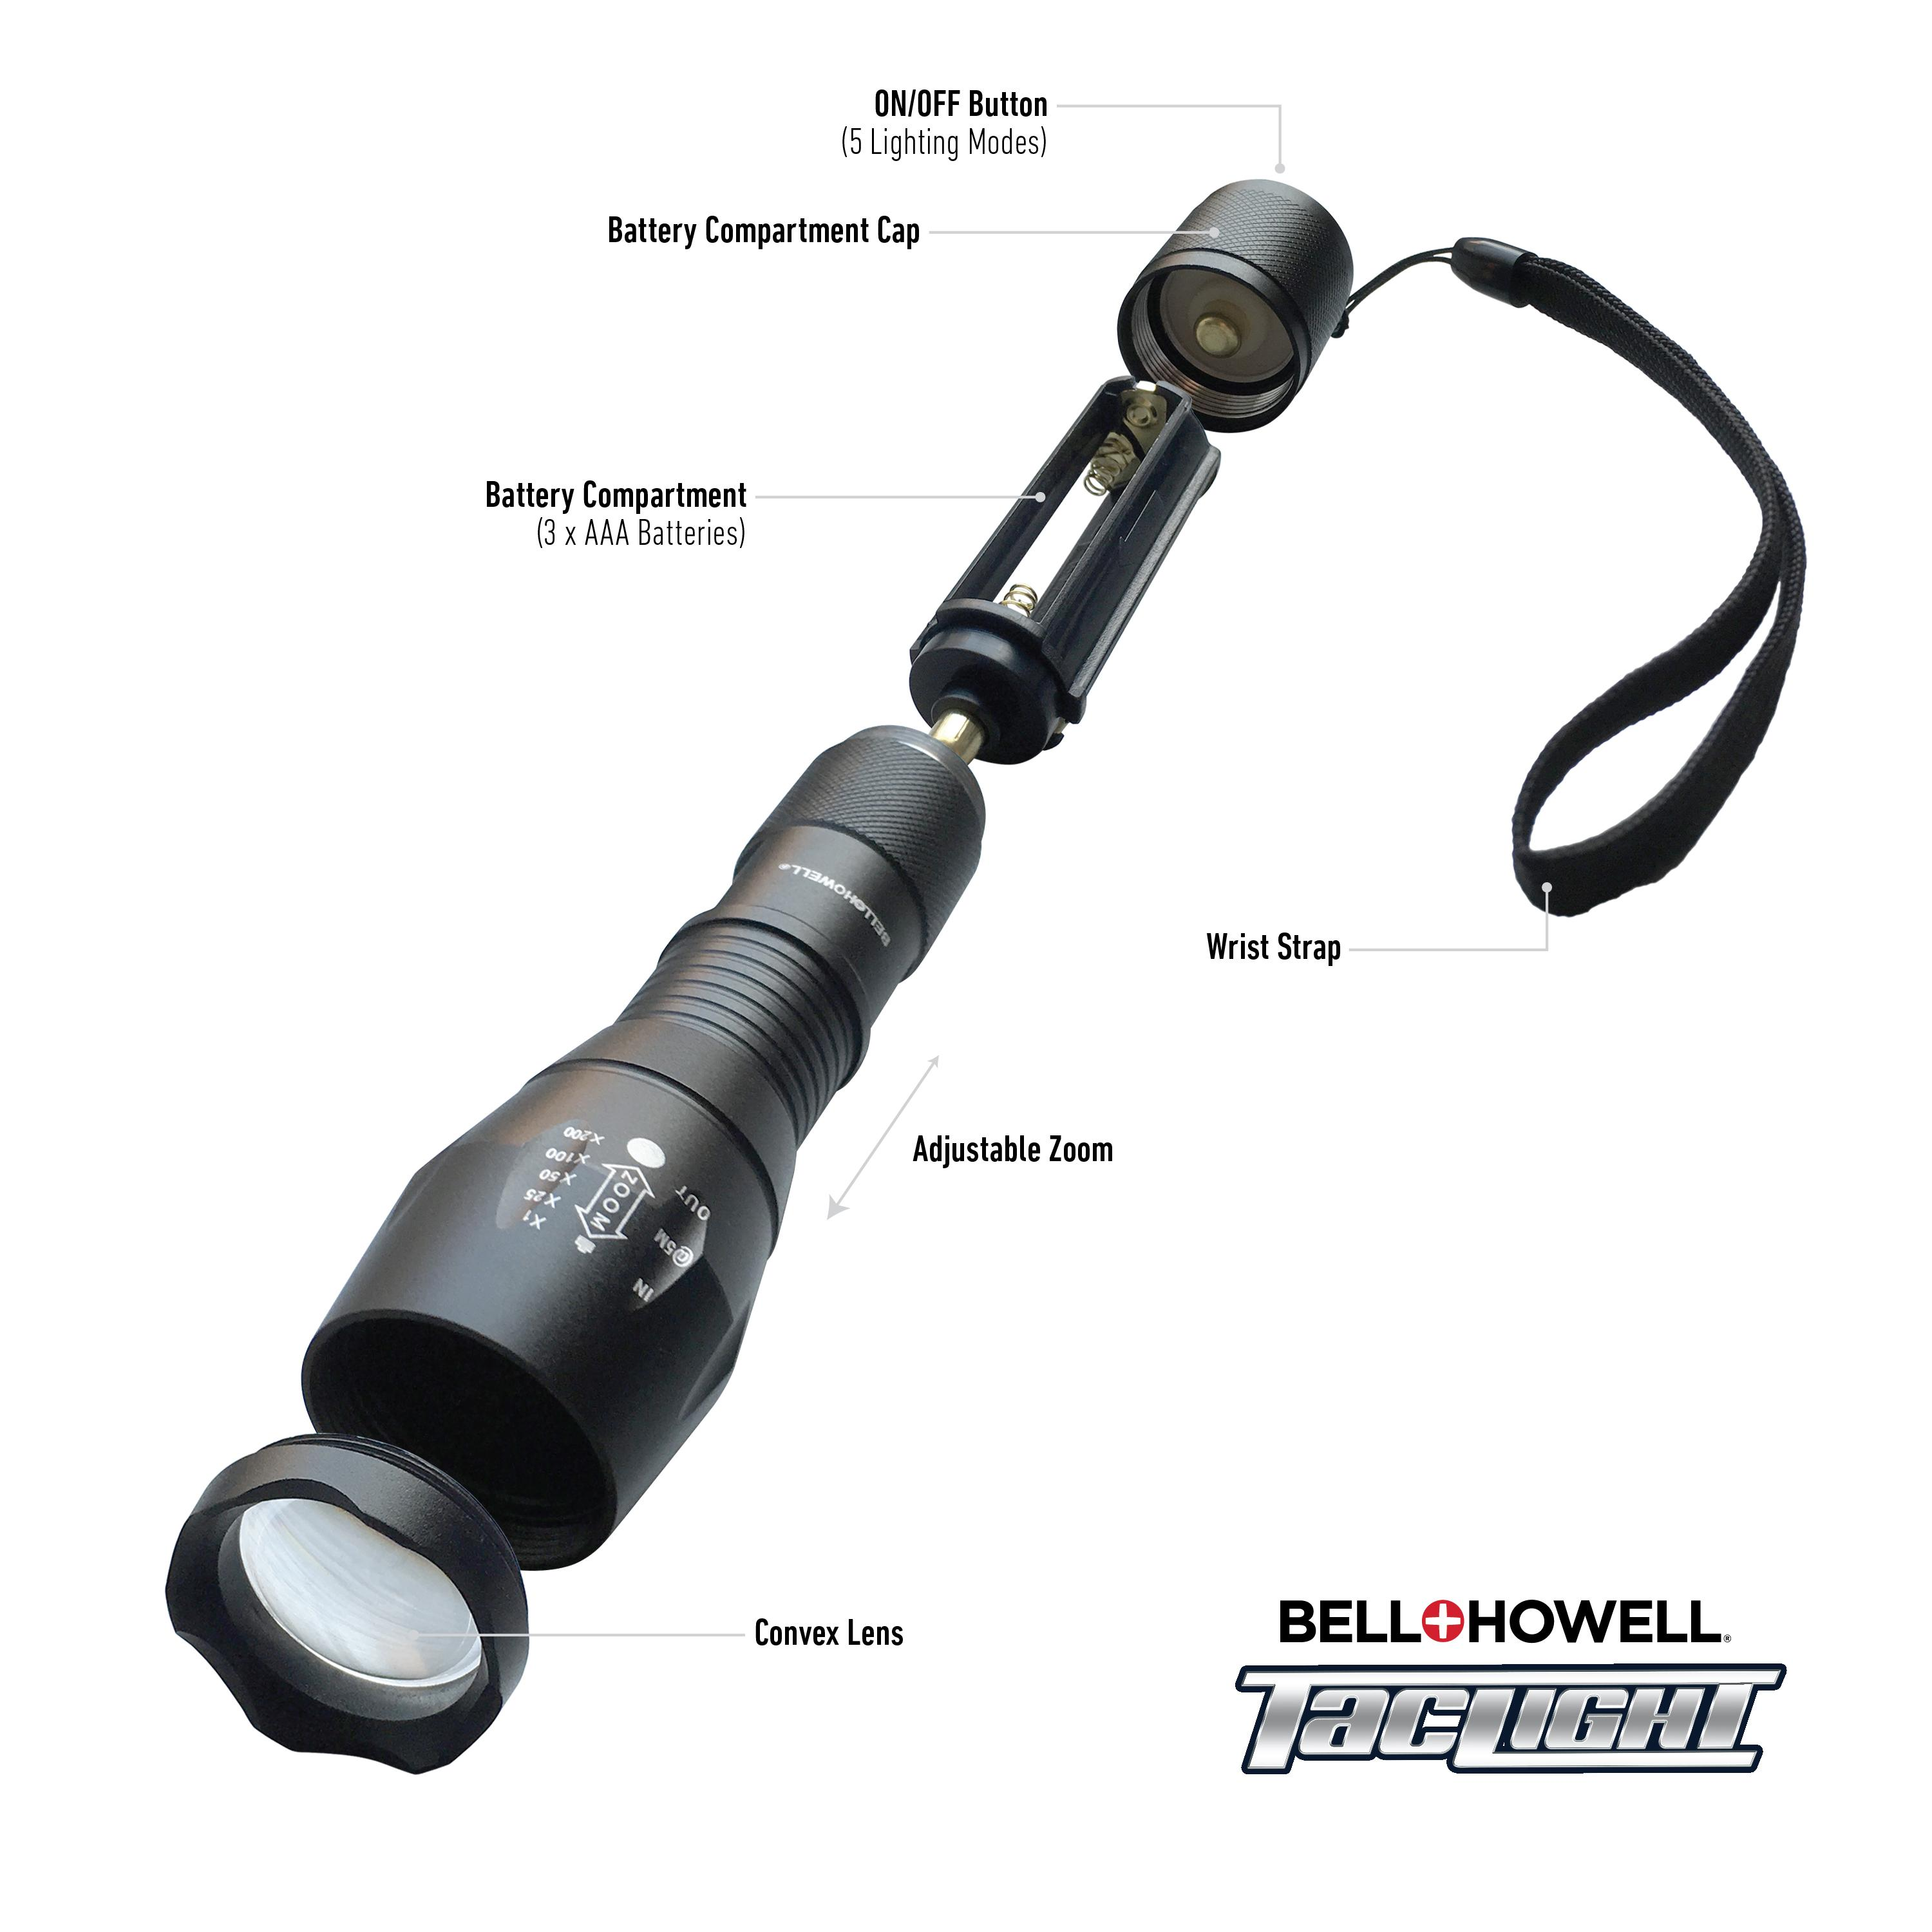 bell howell 1176 taclight high powered tactical flashlight with 5. Black Bedroom Furniture Sets. Home Design Ideas